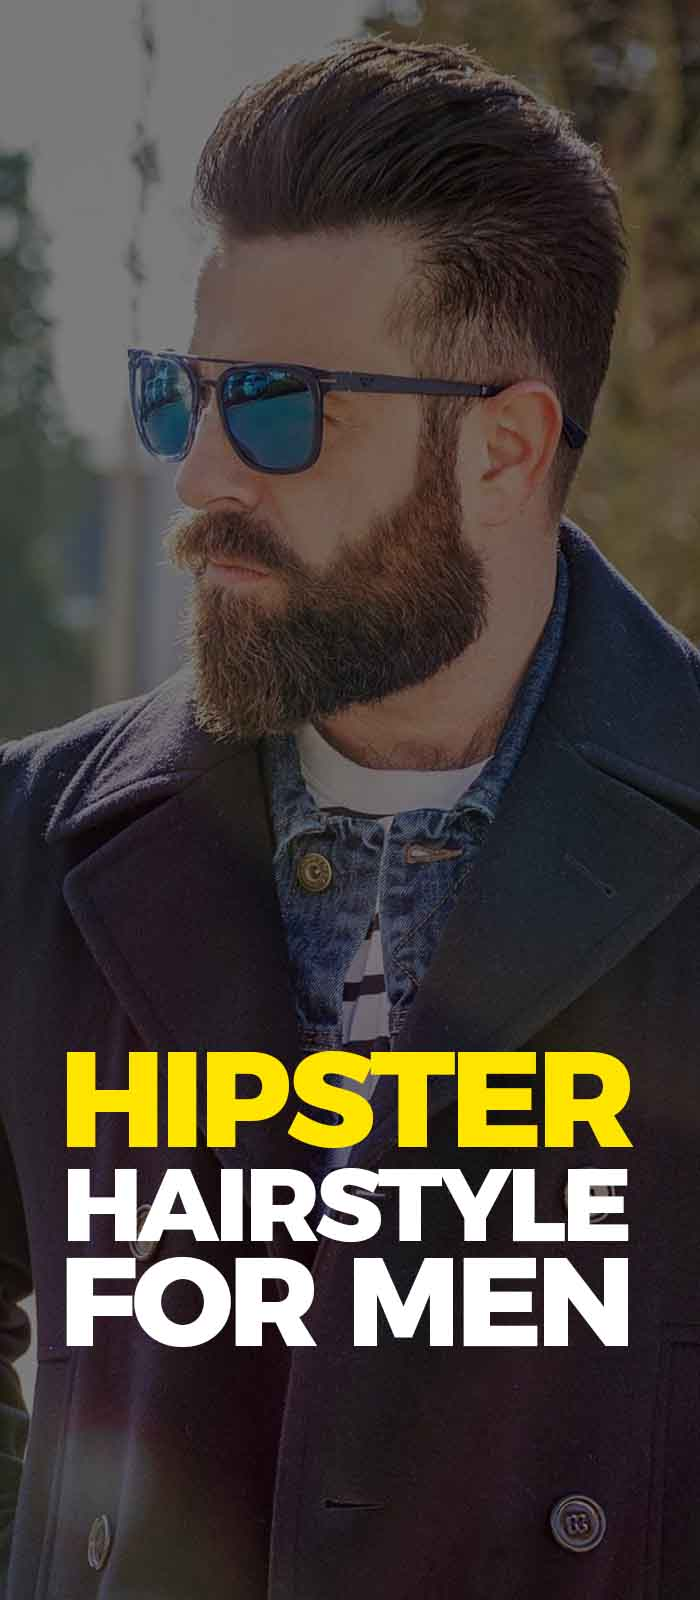 Hipster Hairstyles For Men 2019!